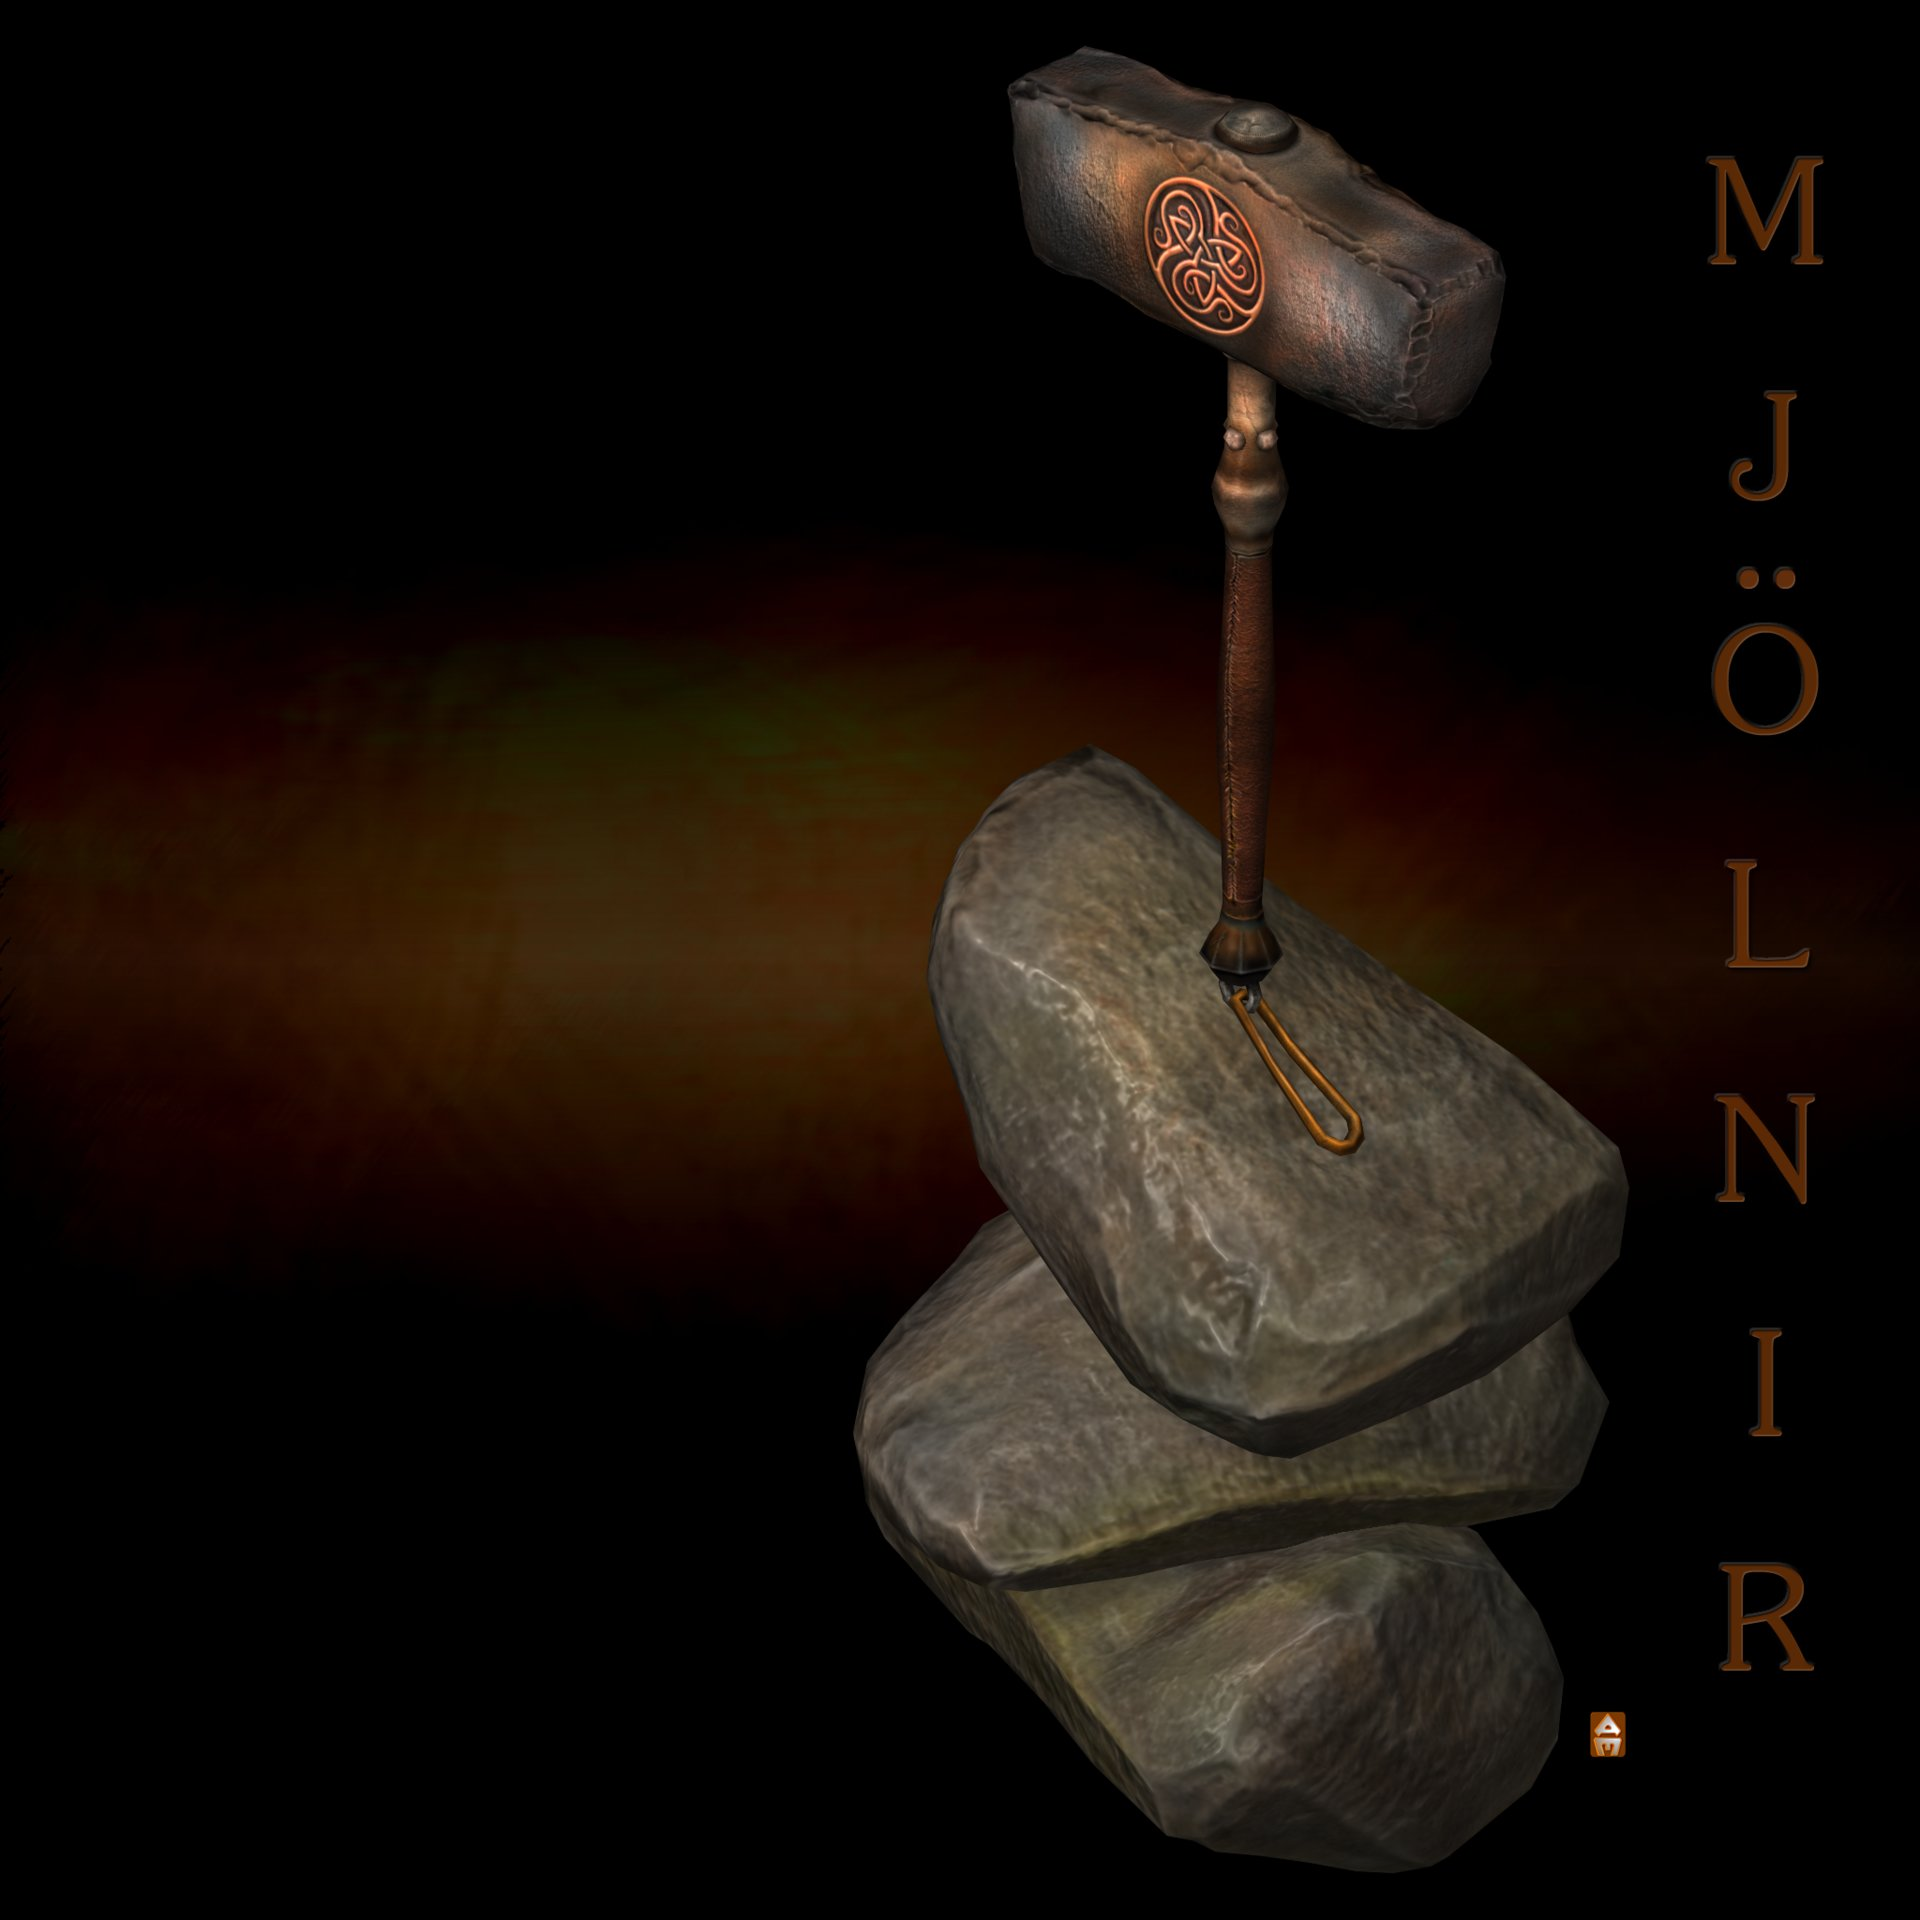 Anthony myers thors hammer mjonir